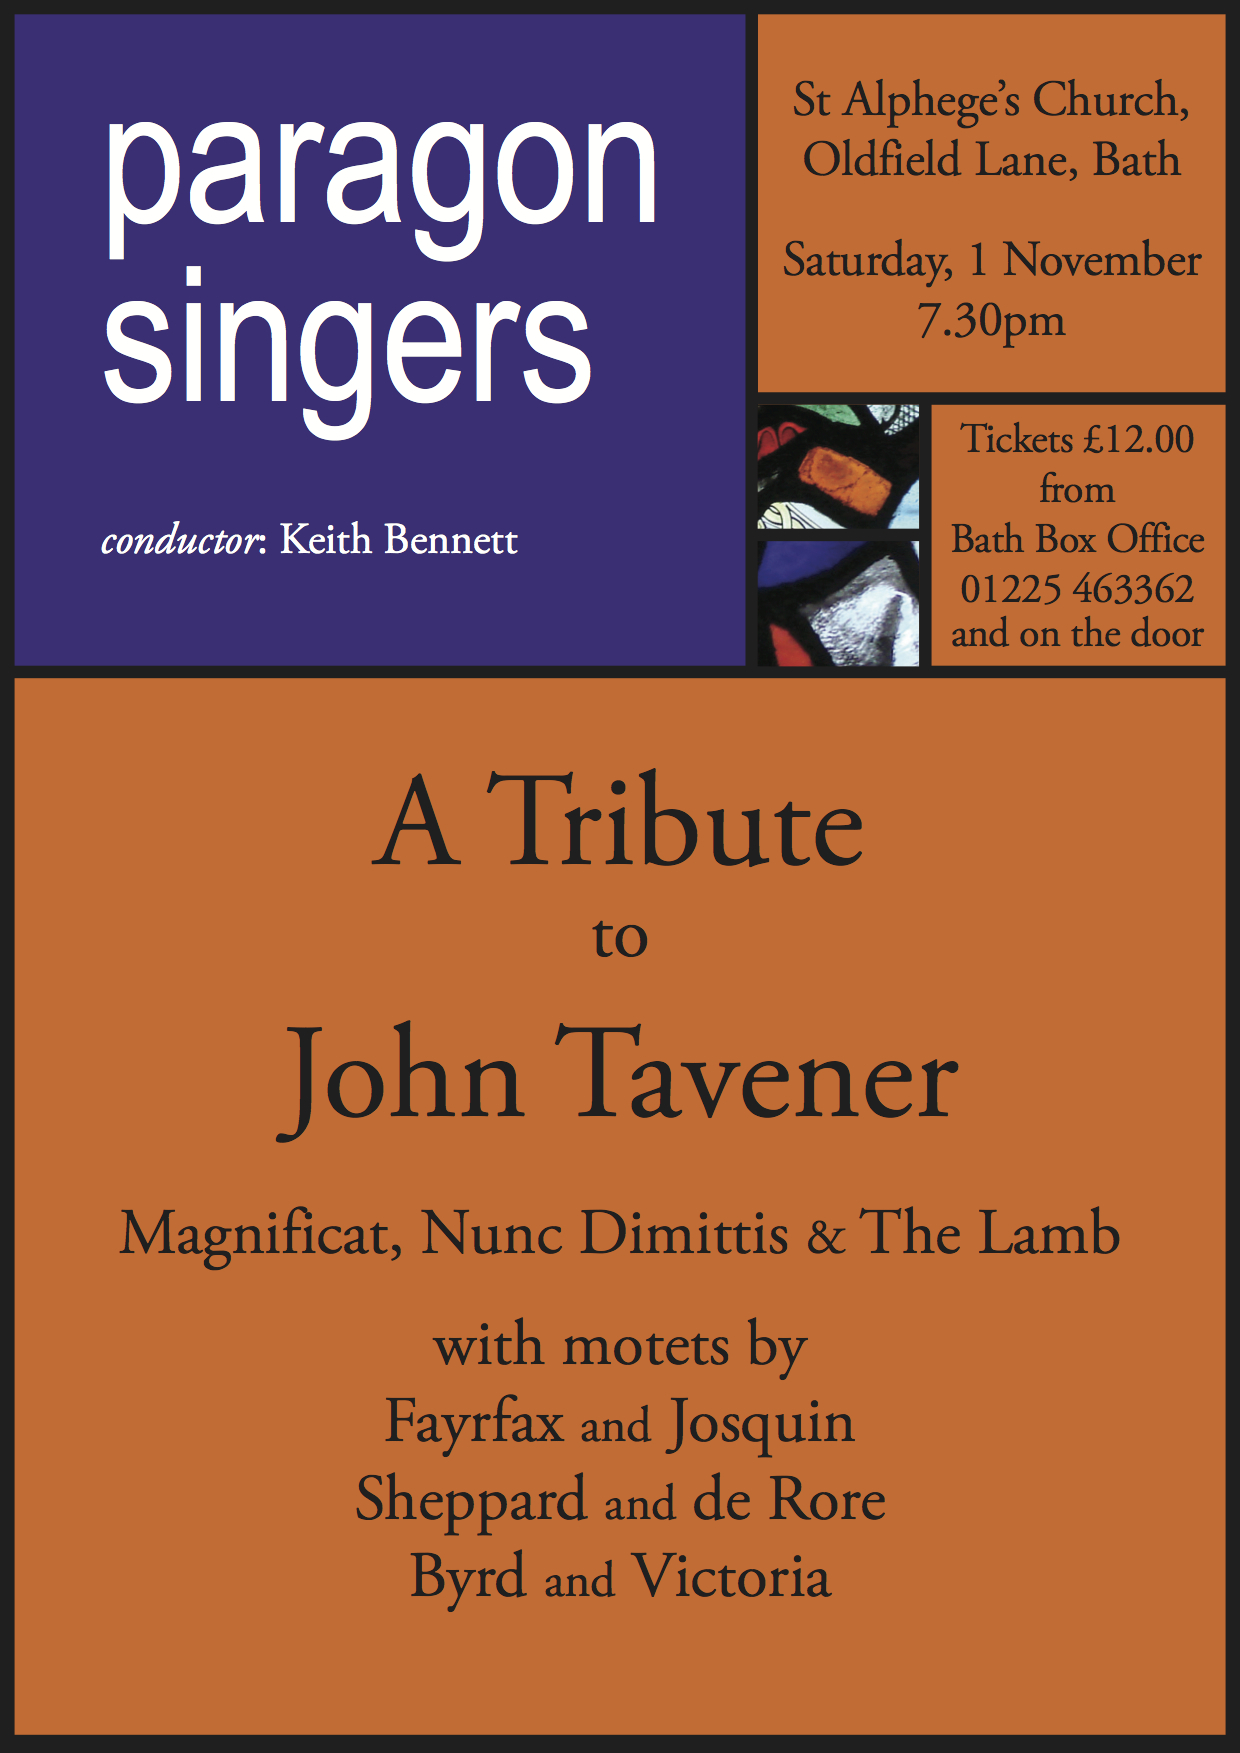 14-10 A tribute to John Tavener.png